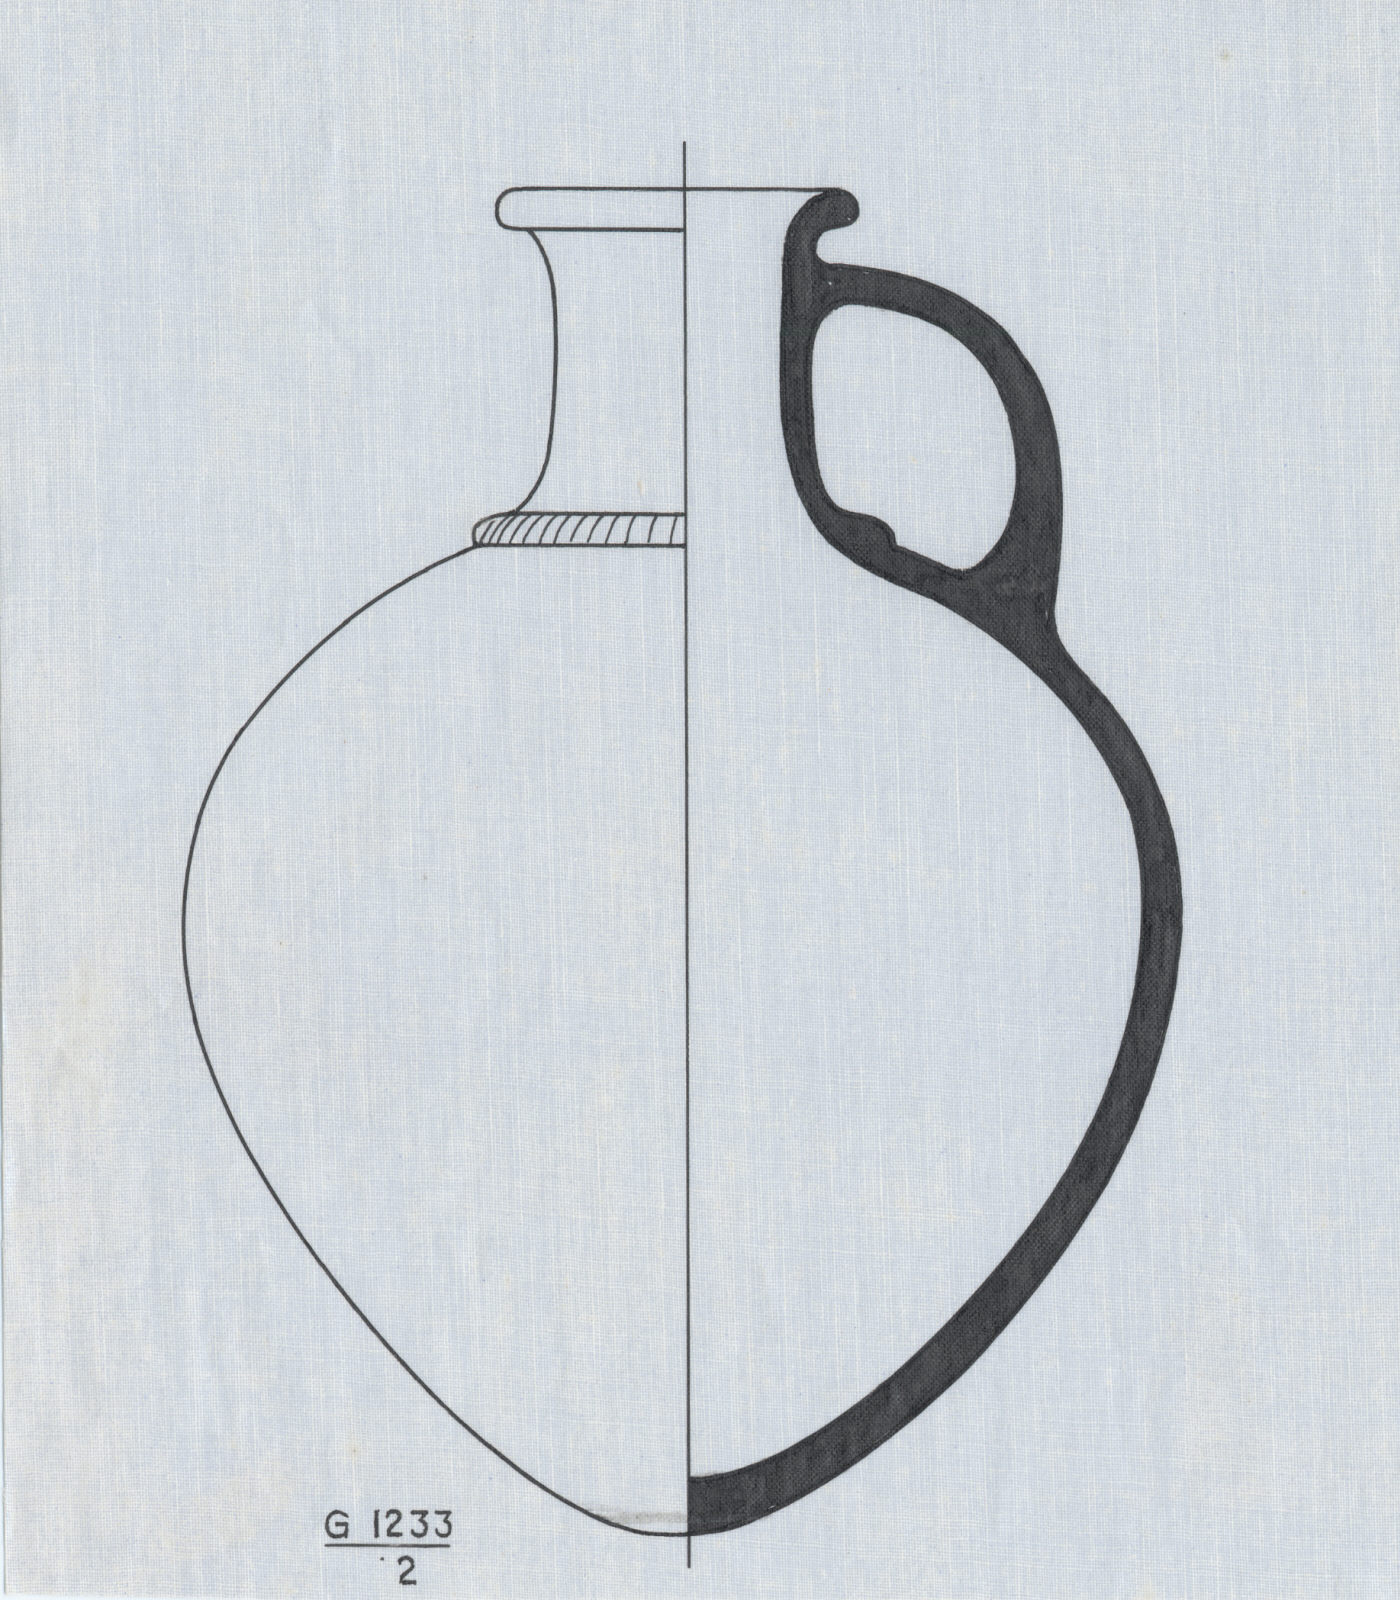 Drawings: G 1233-Annex: pottery, jar with handle